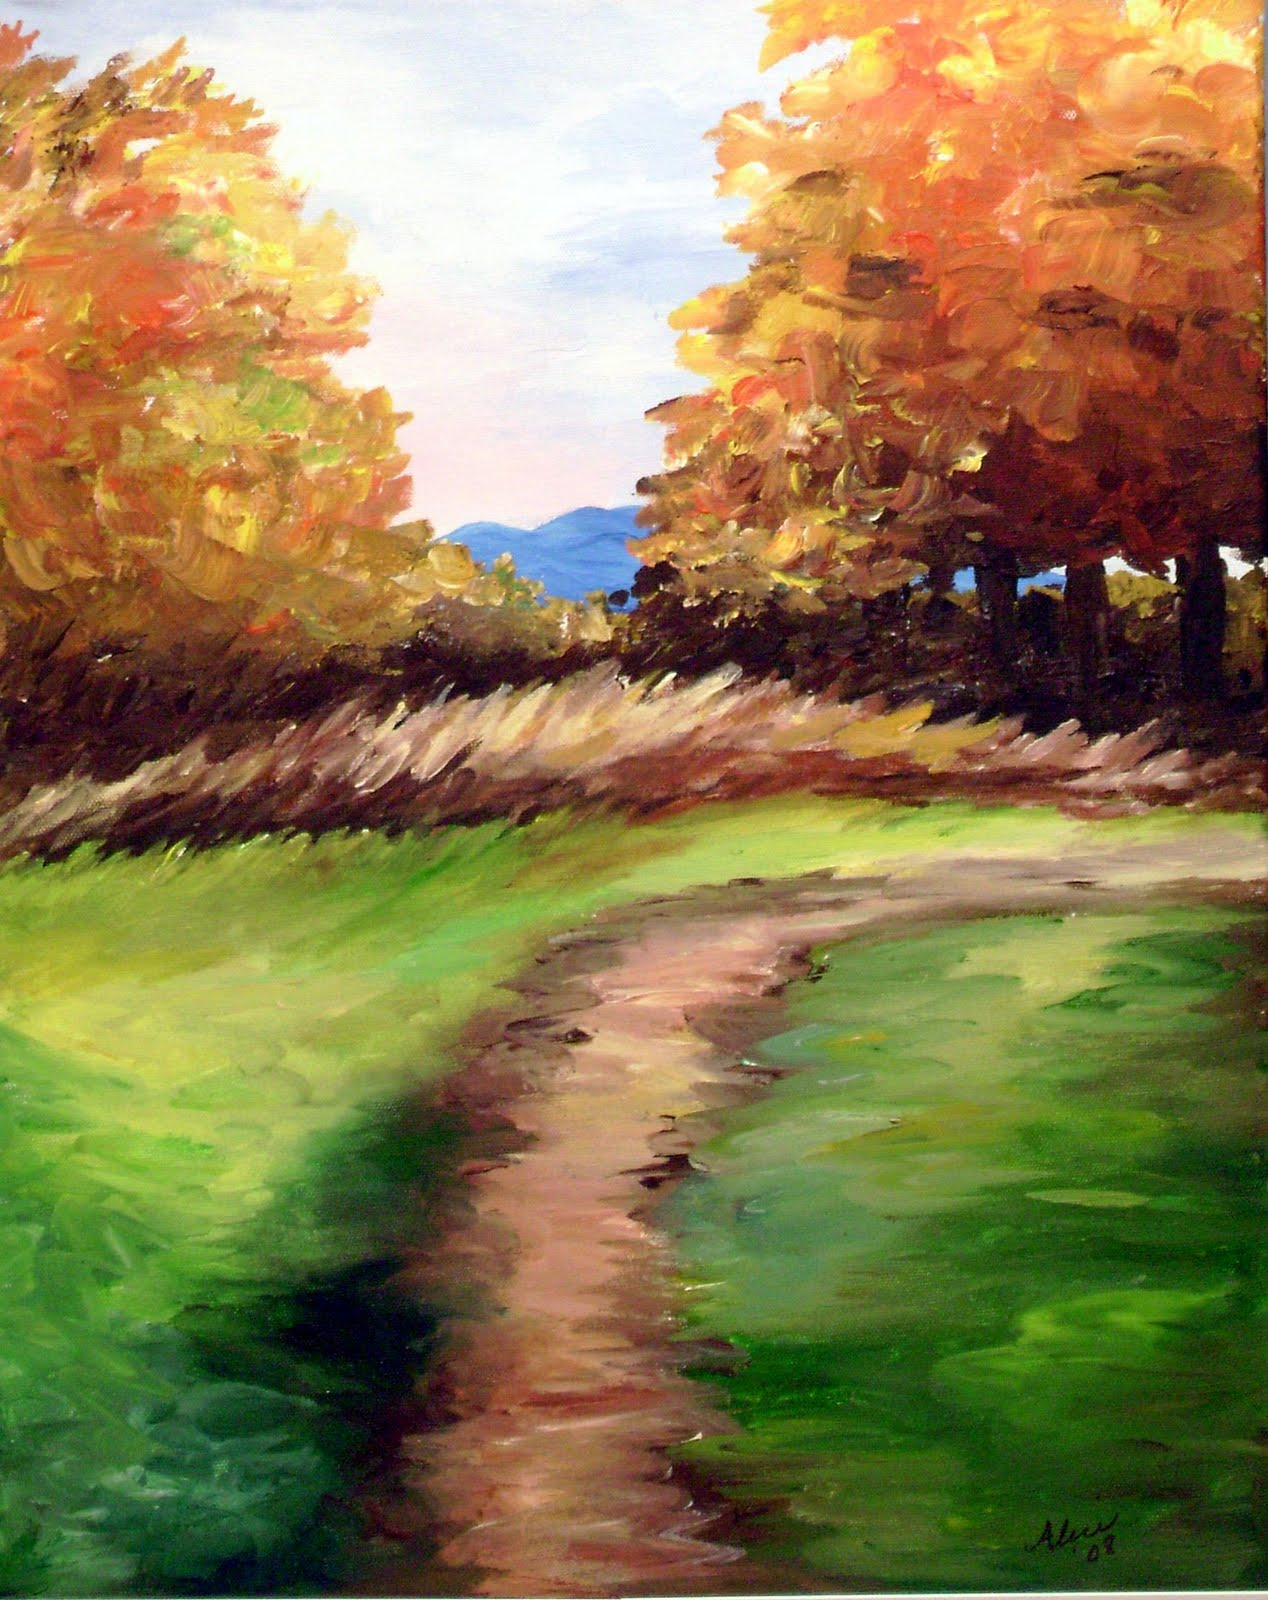 Painting with alice a couple of great paintings for the fall for Fall paintings easy